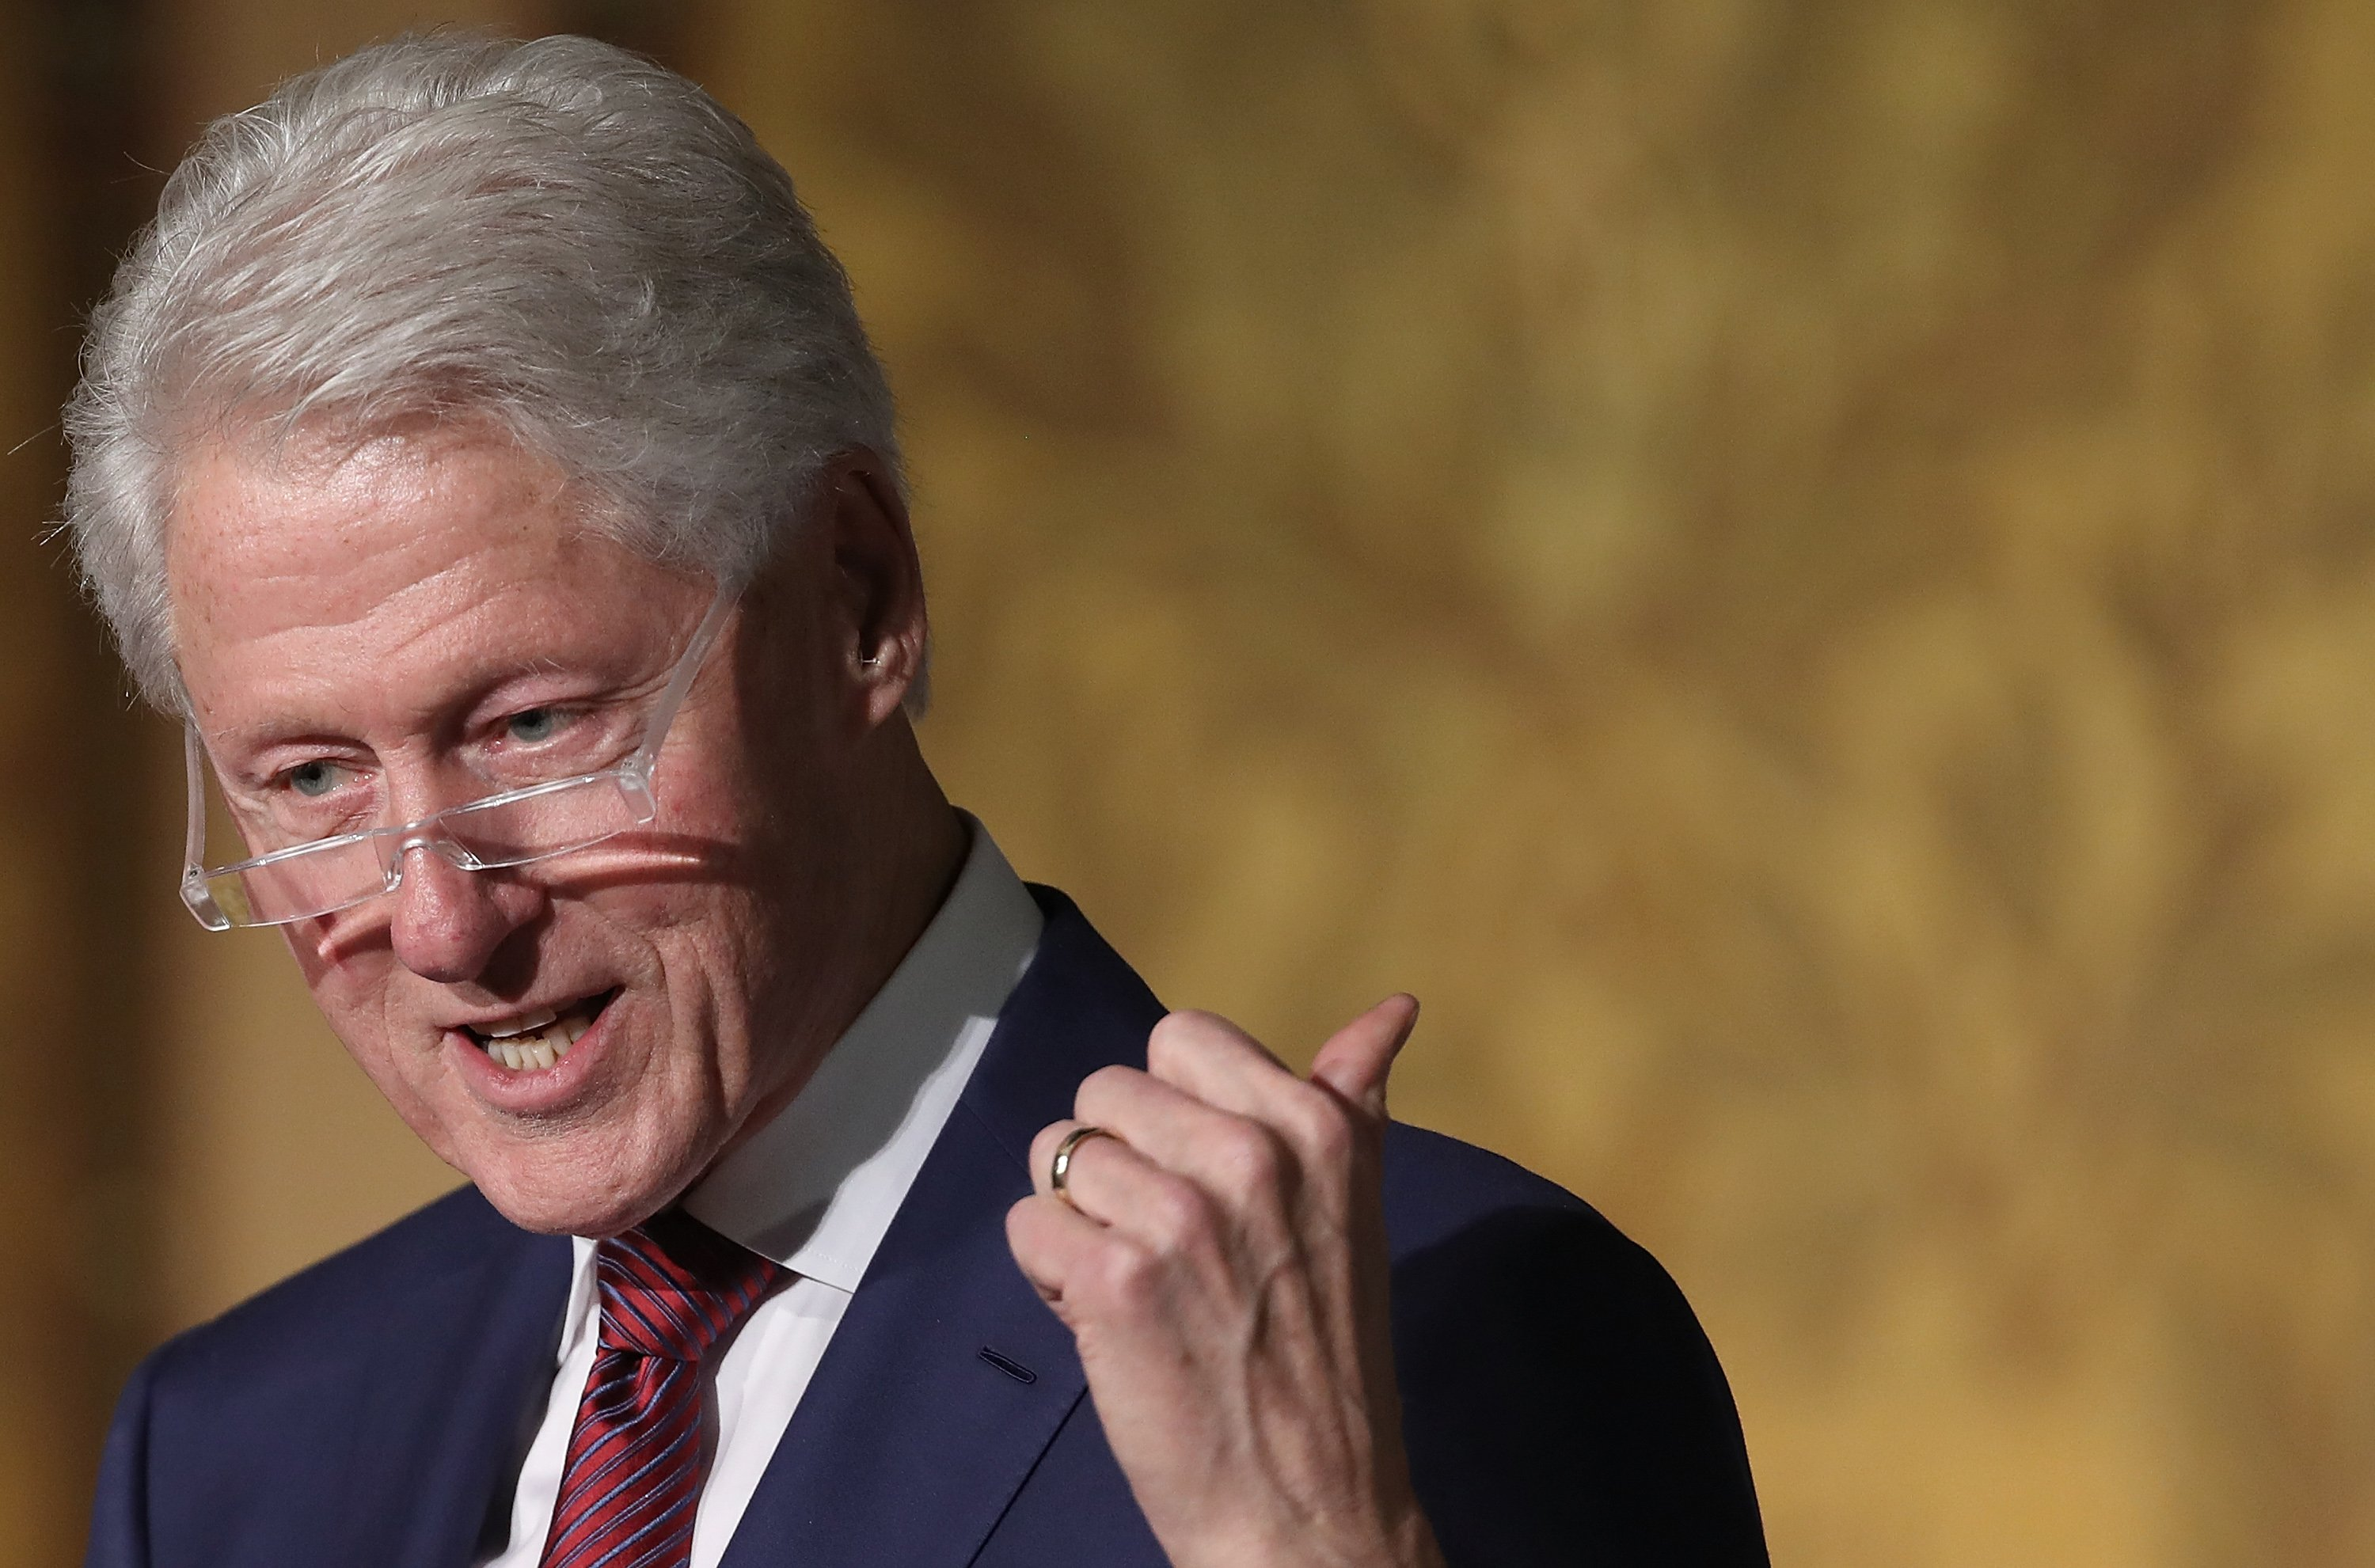 Former President Bill Clinton speaking at Georgetown University's Gaston Hall on November 6, 2017 in Washington, DC. | Photo: Getty Images